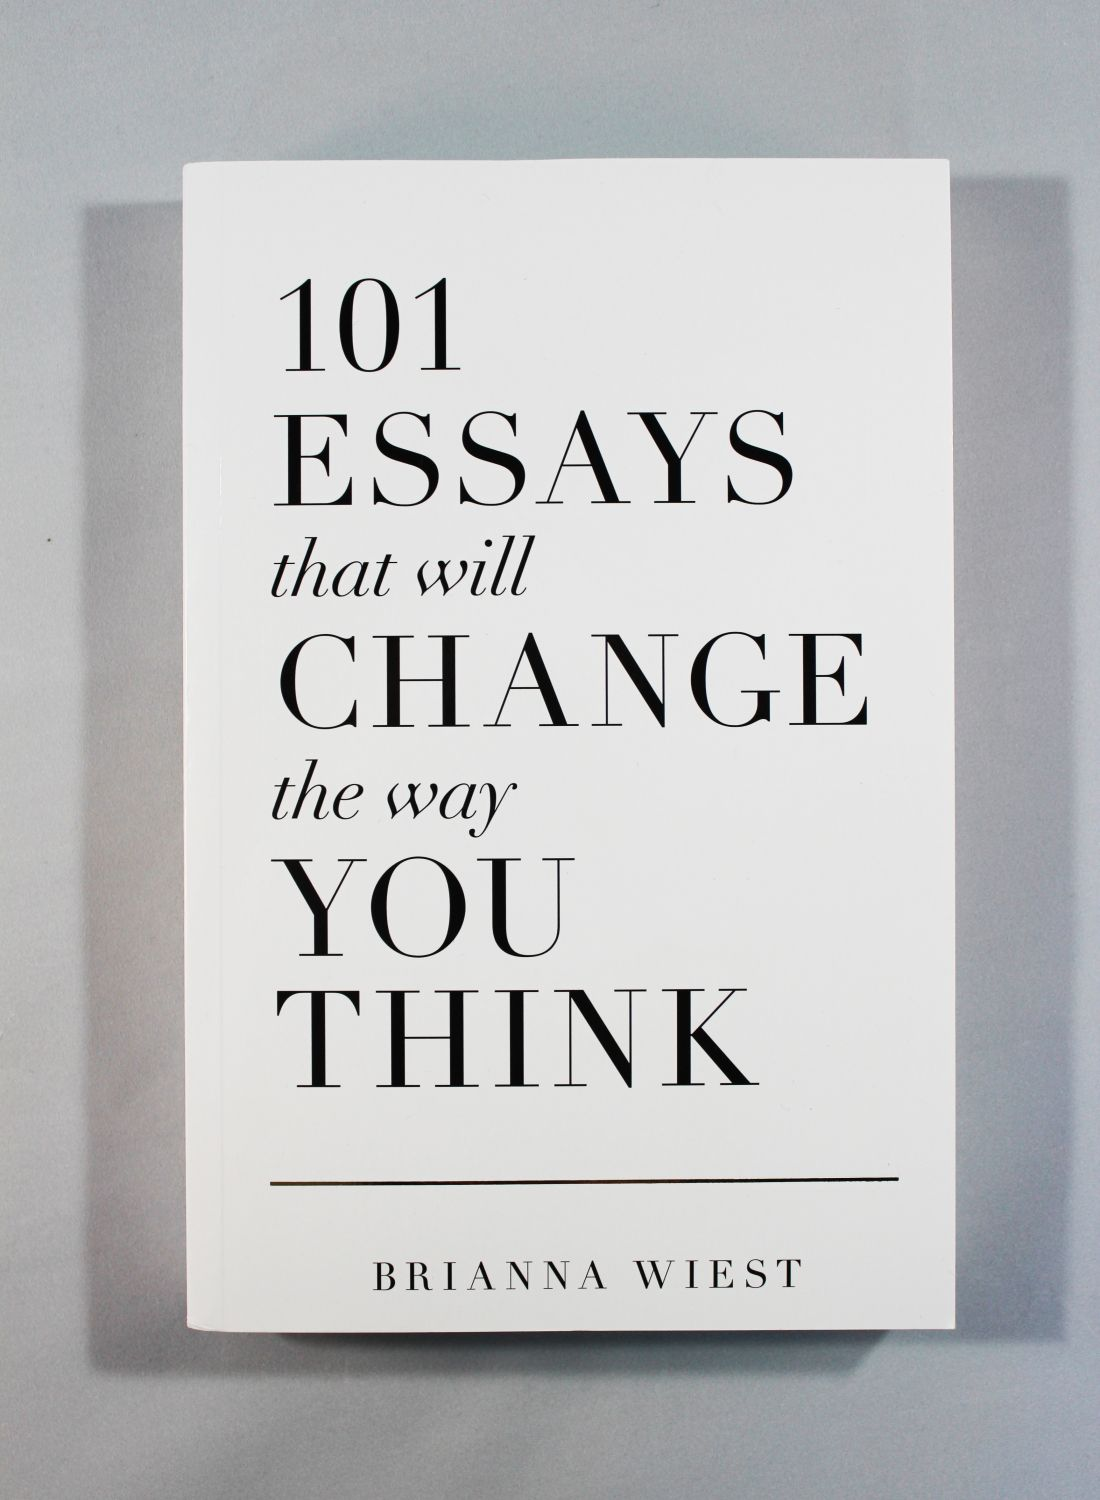 007 Essay Example Essays That Will Change The Way You Think Unusual 101 Book Depository Barnes And Noble Review Full